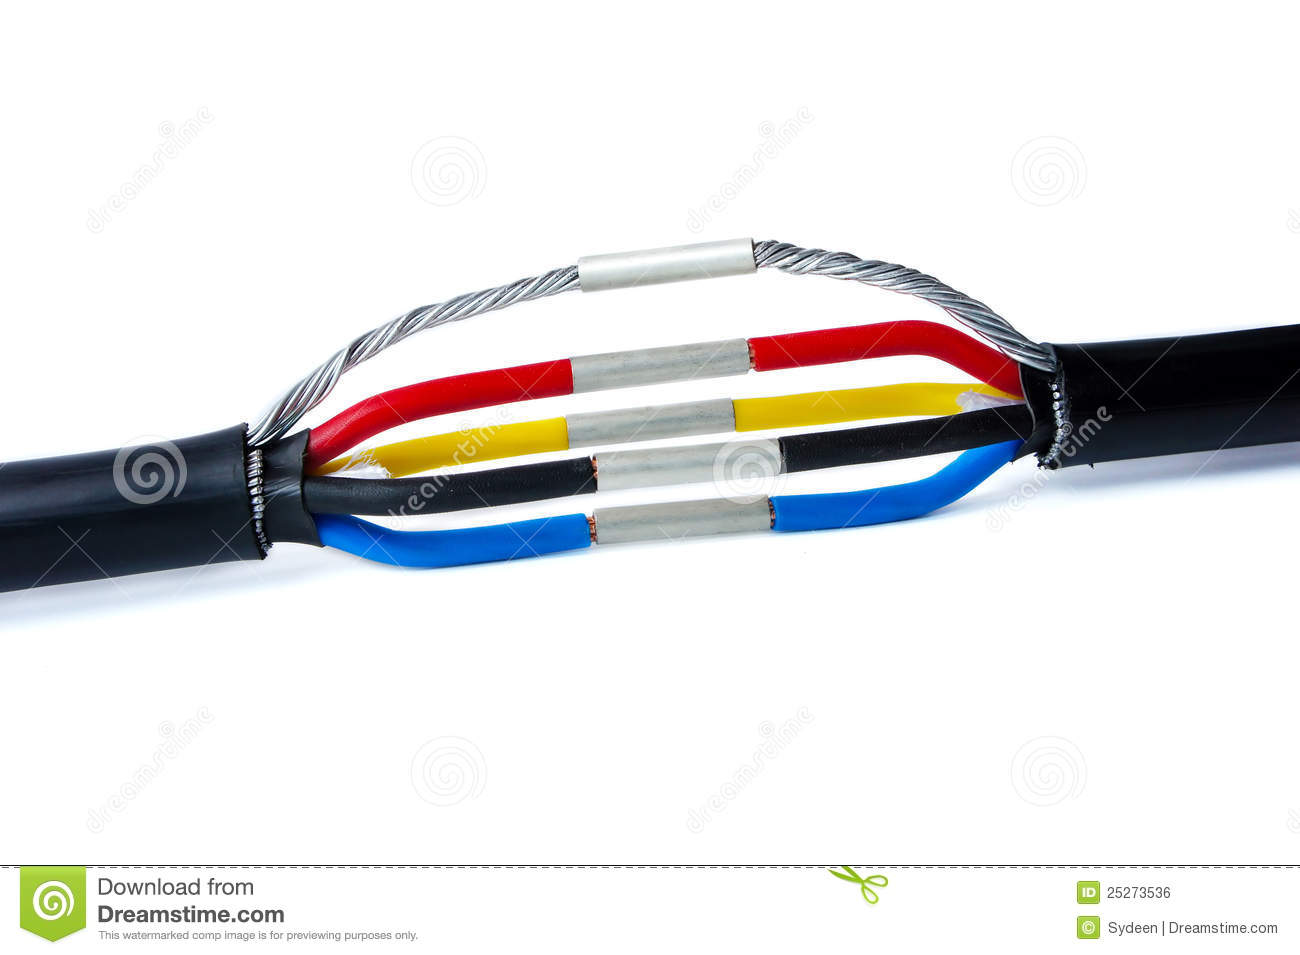 Three phase cable jointing stock photo. Image of electric - 25273536